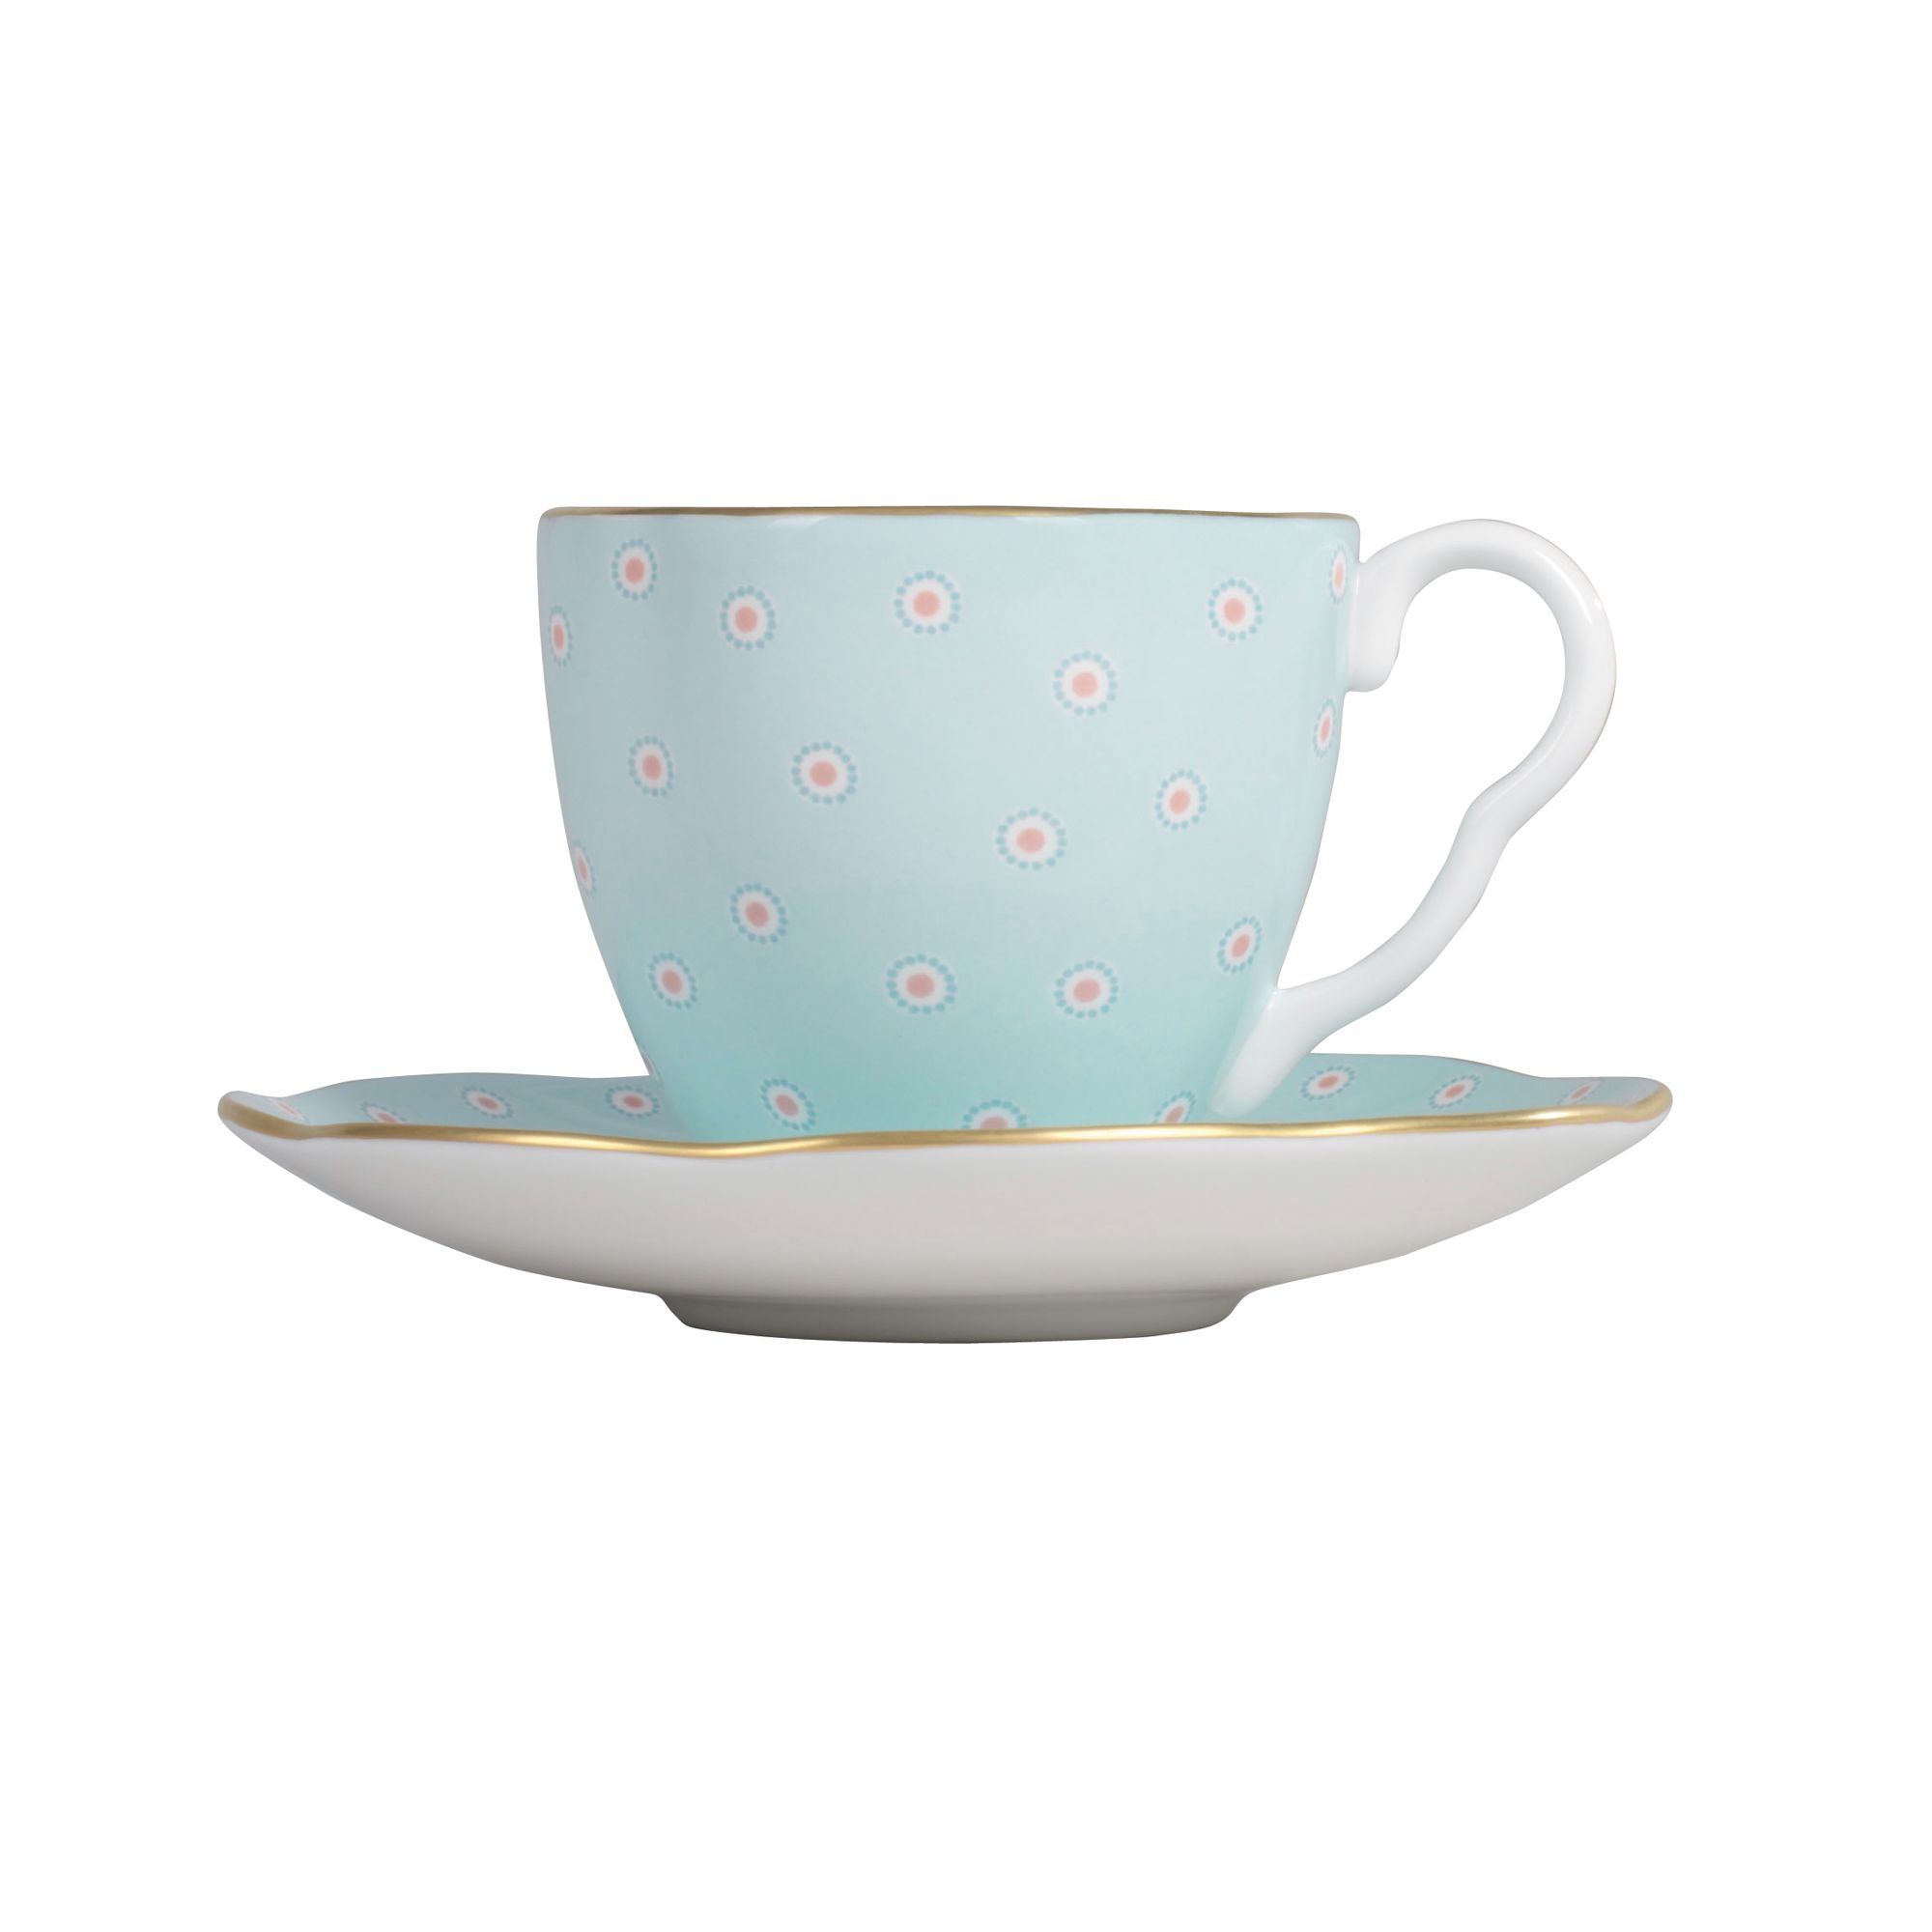 Polka Dot Cup and Saucer - Turquoise